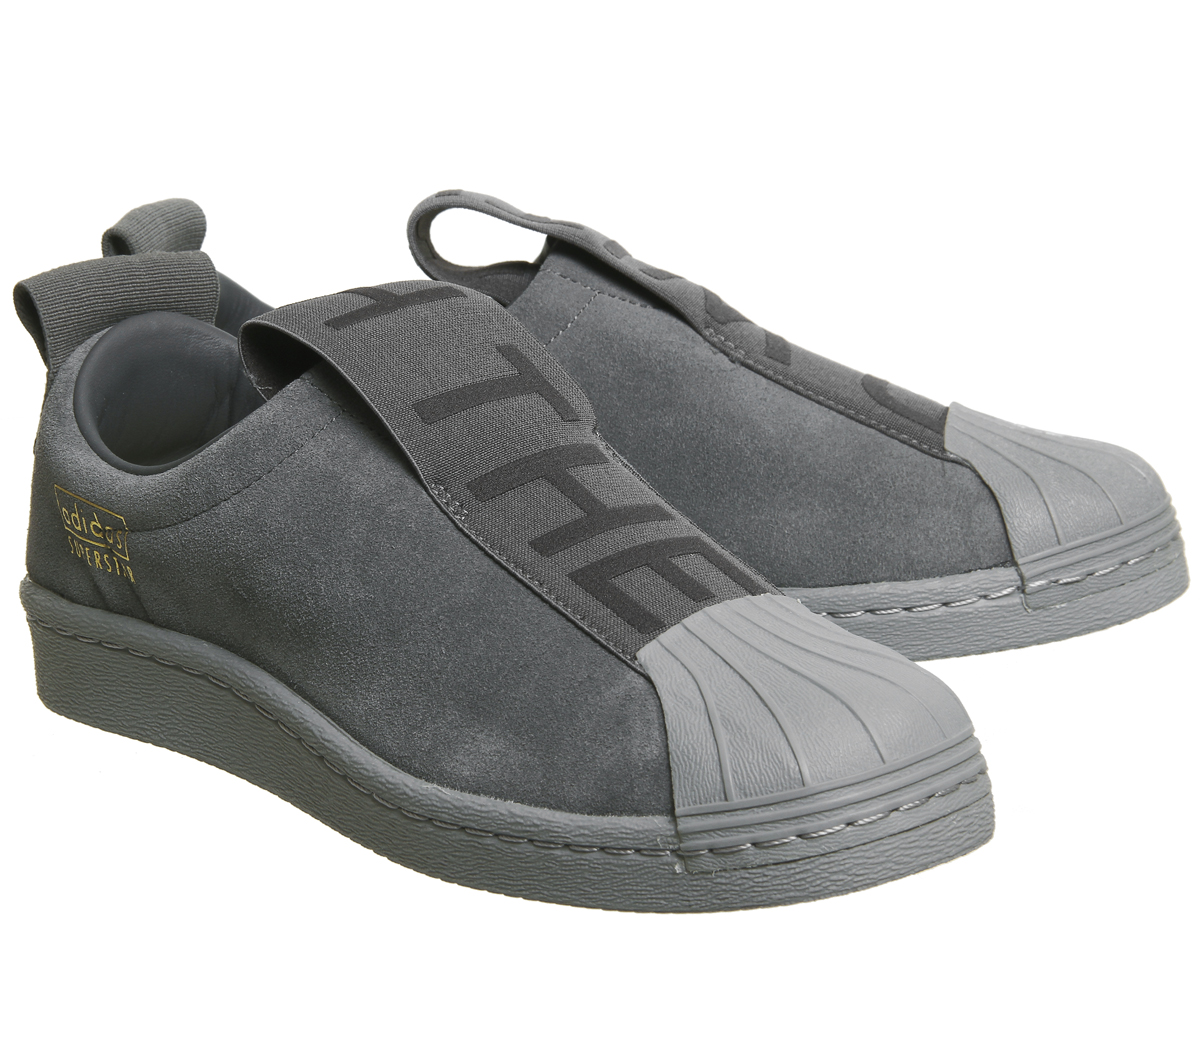 Womens Adidas Superstar Bw35 Slip On GREY FIVE MONO Trainers Shoes ... 17eb714015